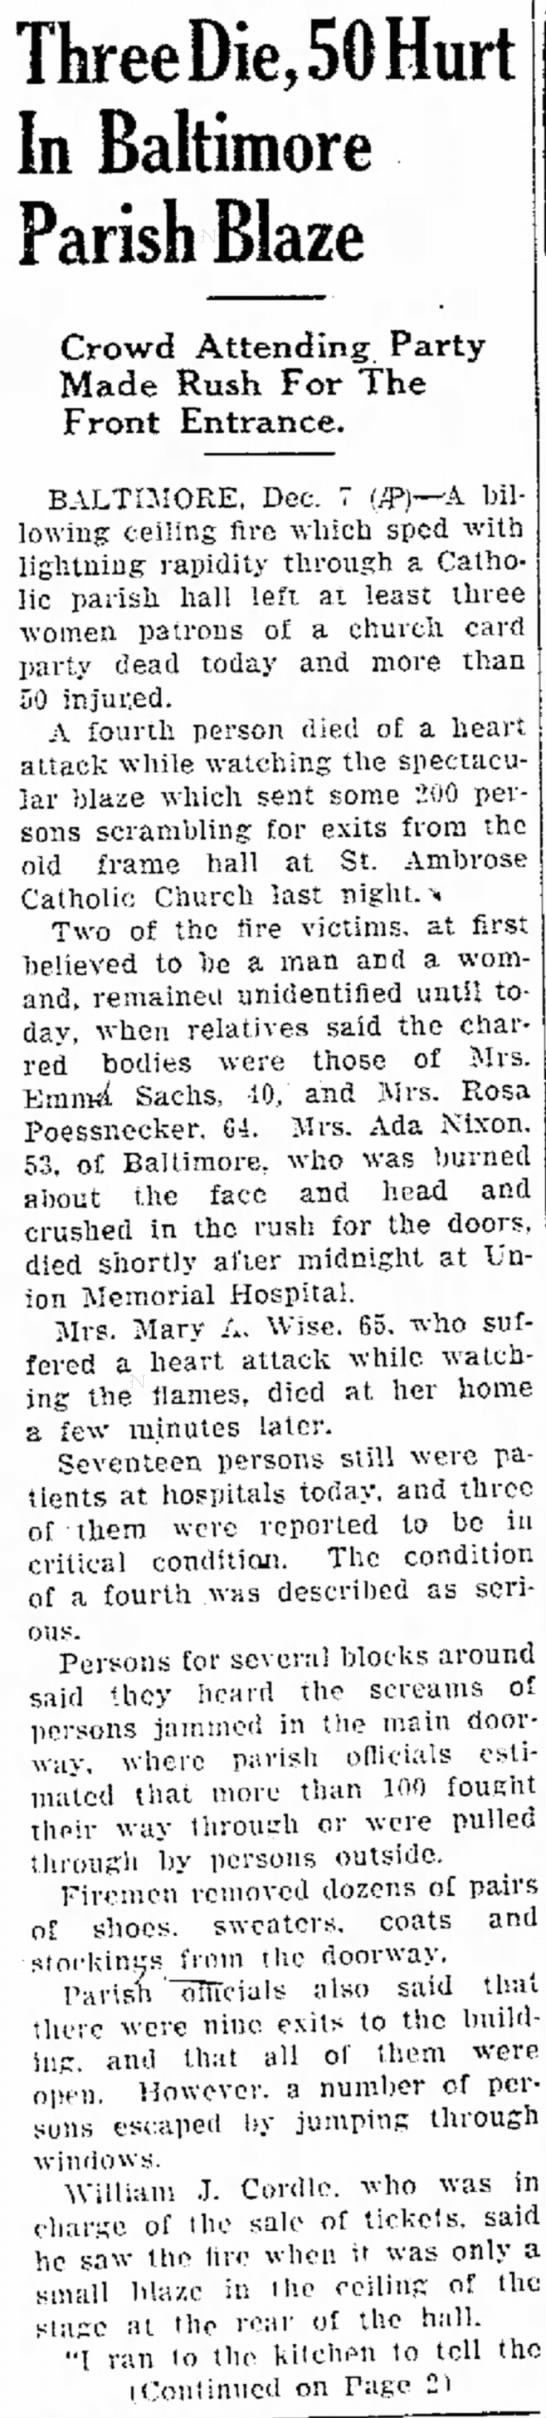 St Ambrose Fire - Dec 7, 1944 - Hagerstown Daily Mail